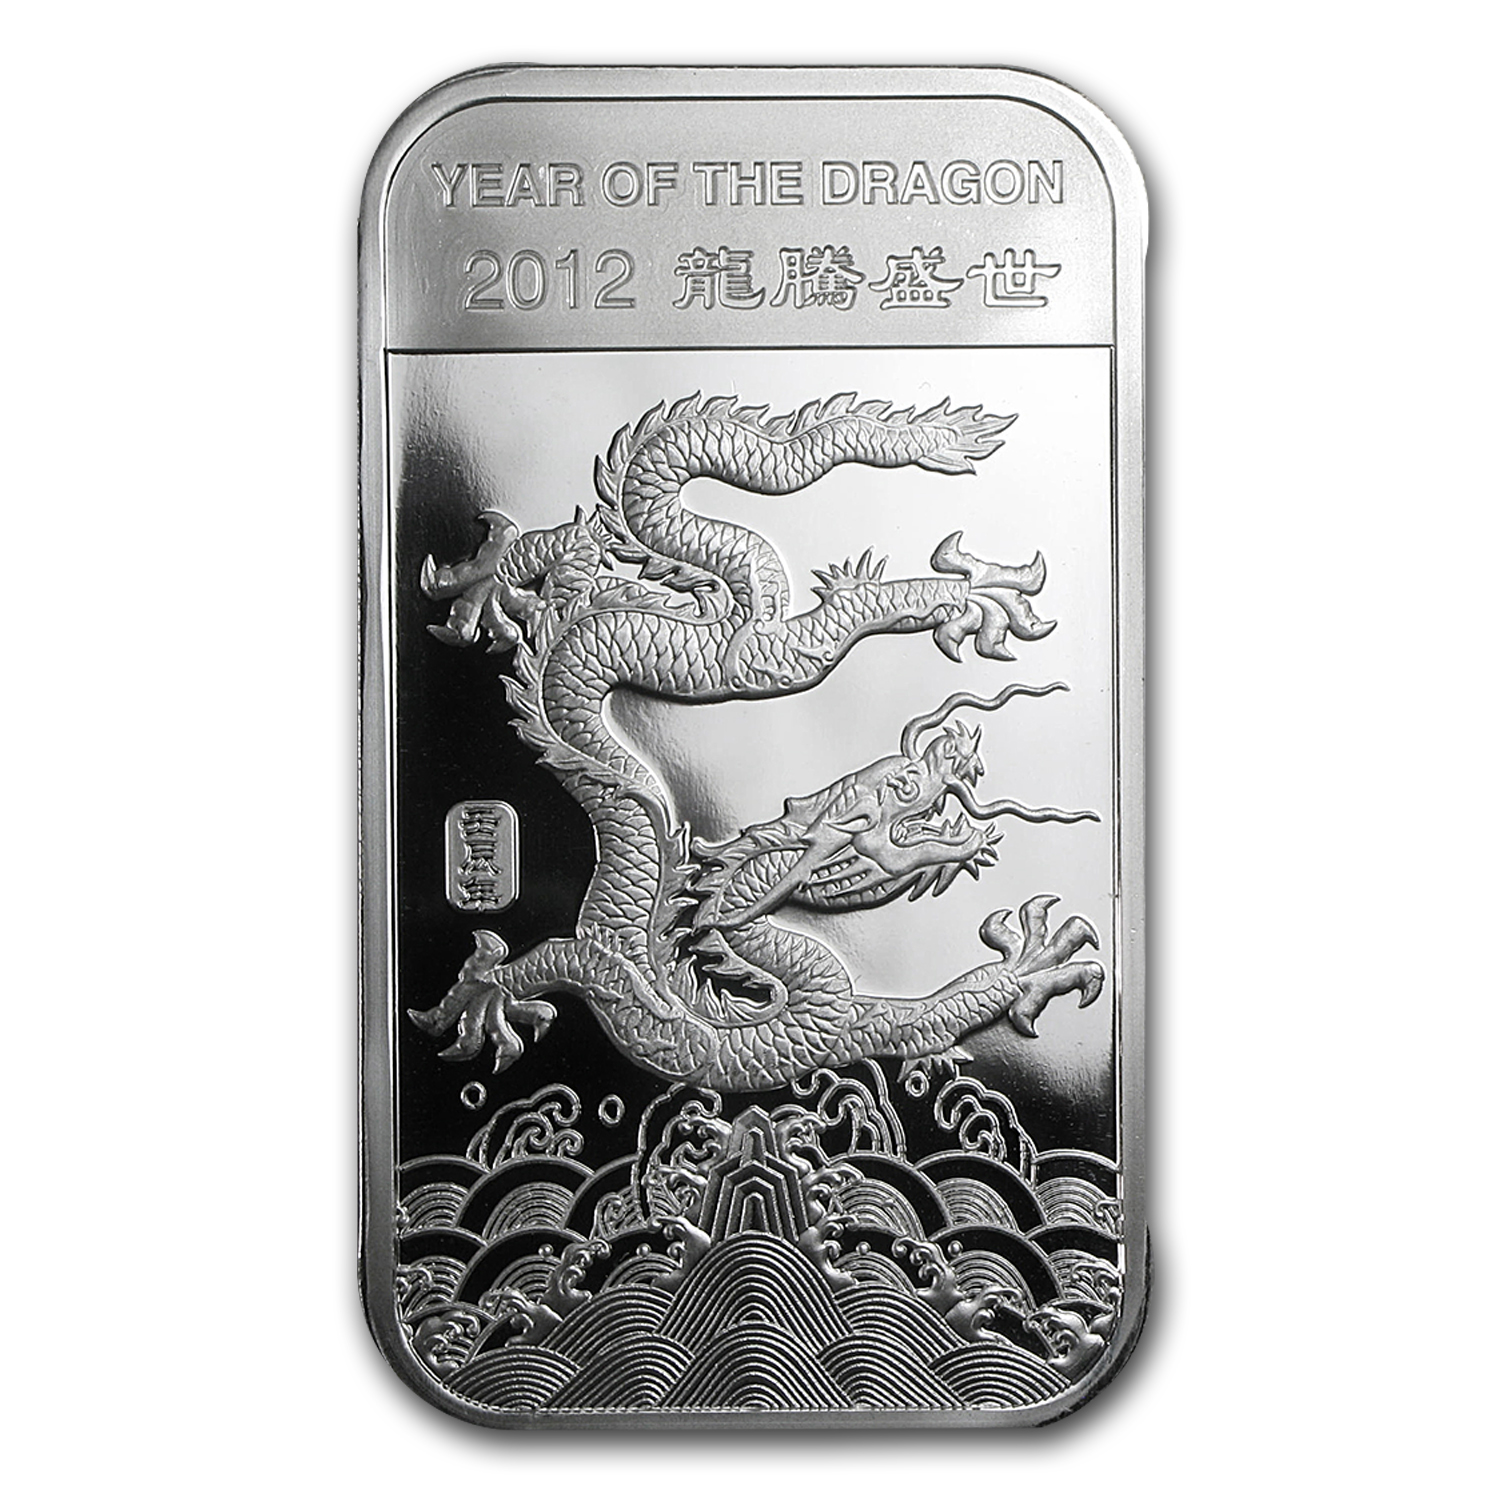 10 oz Silver Bar - APMEX (2012 Year of the Dragon)